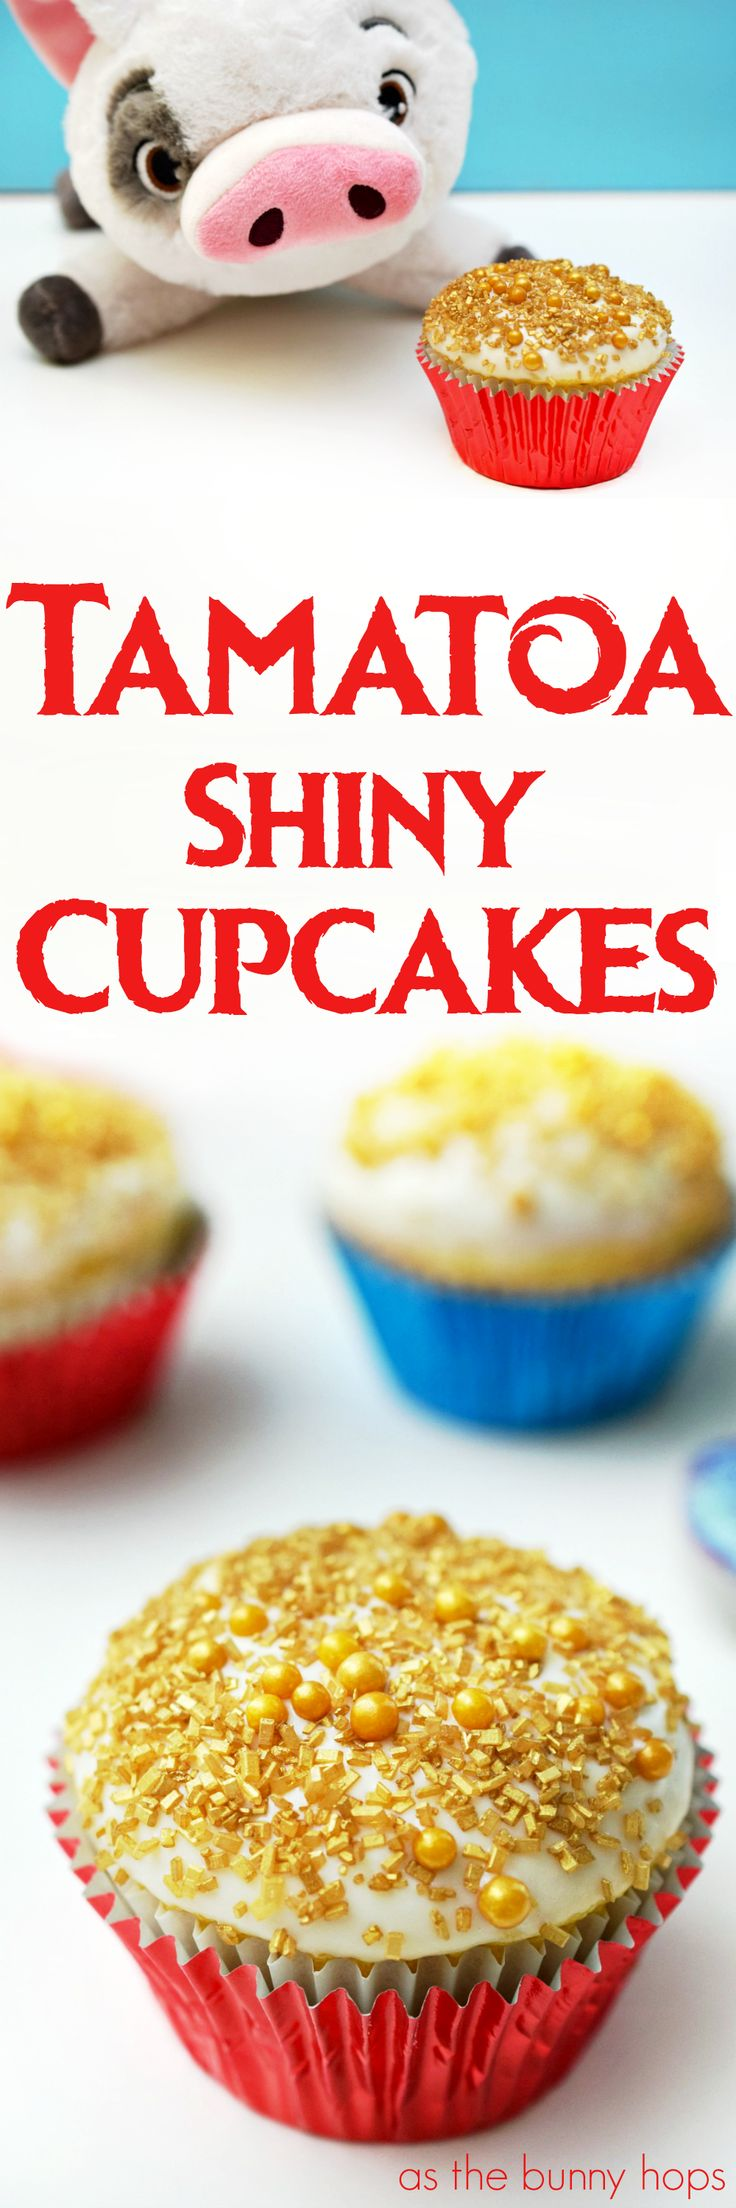 Make your movie night sparkle with Moana-inspired Tamatoa Shiny Cupcakes! Just two easy steps. (Not including guarding your cupcakes from Pua!)